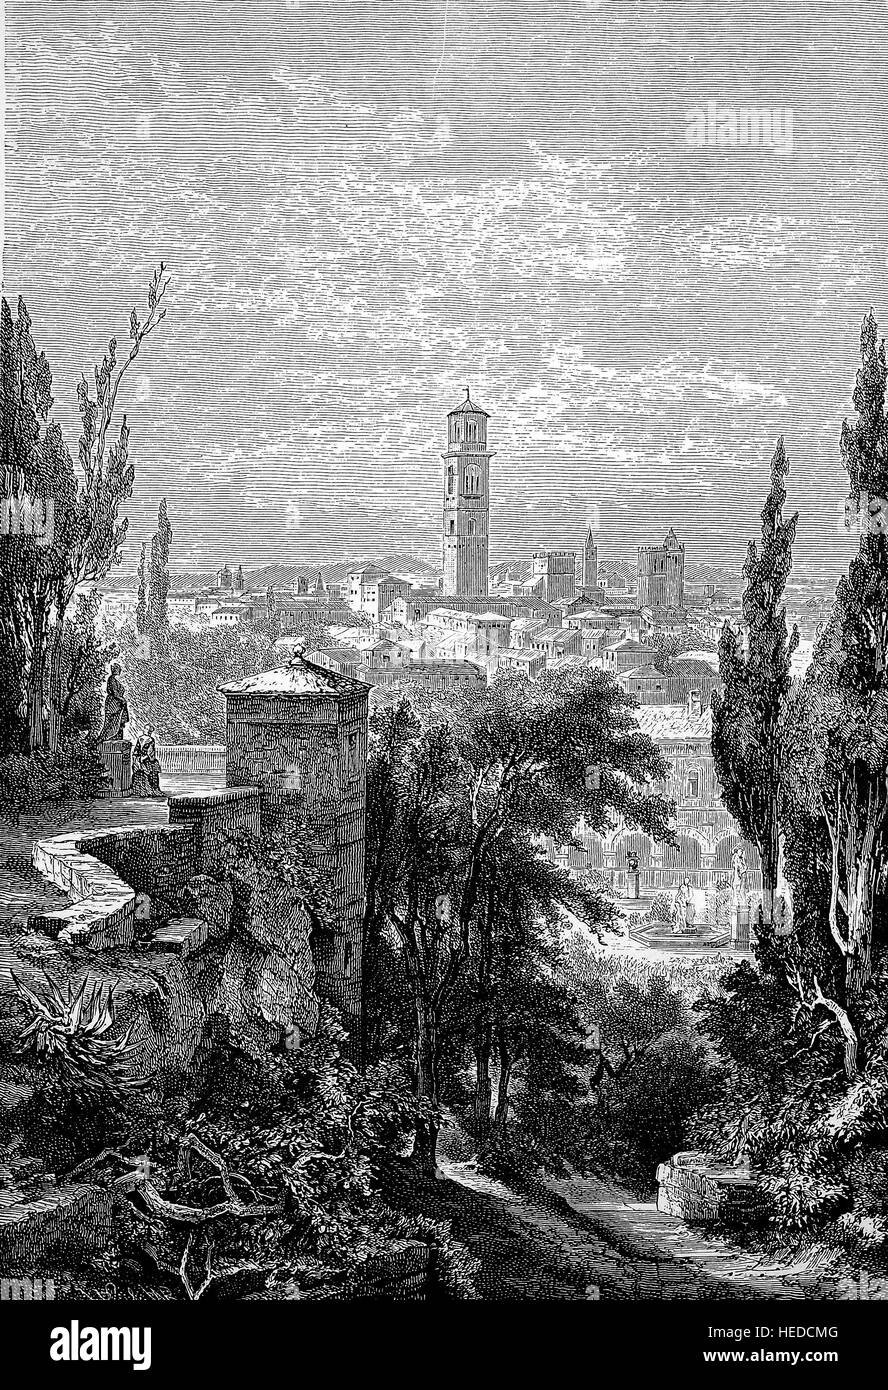 Part of Giardino Giusti in Verona, view of the city from a hill, Italy, from a woodcut of 1880, digital improved - Stock Image